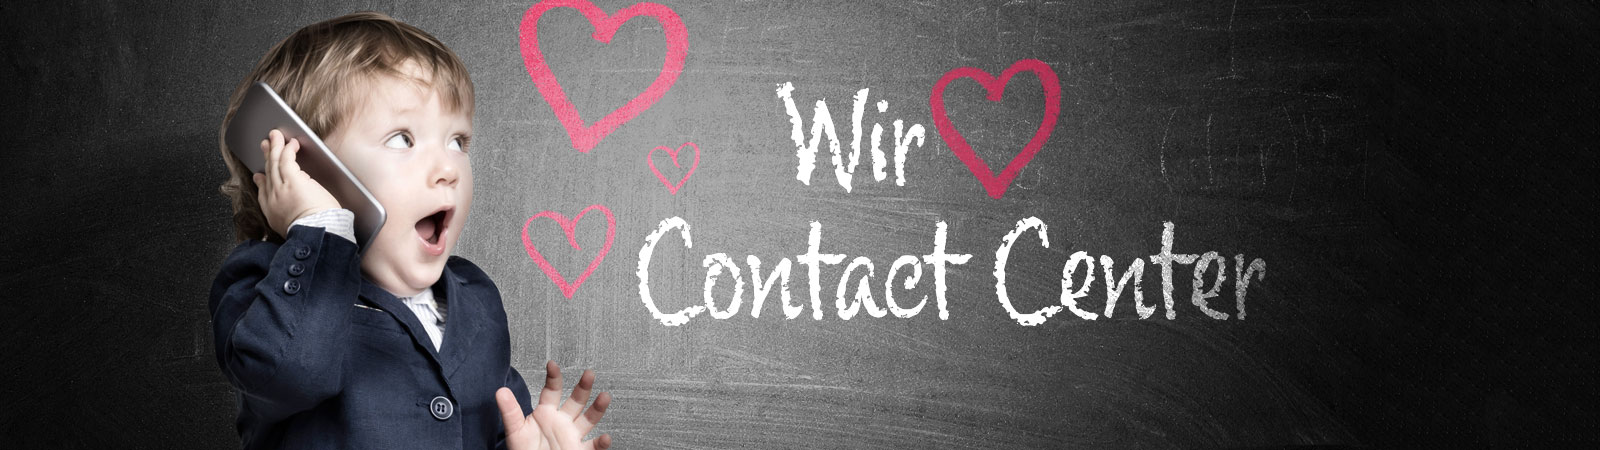 Wir lieben Contact Center!